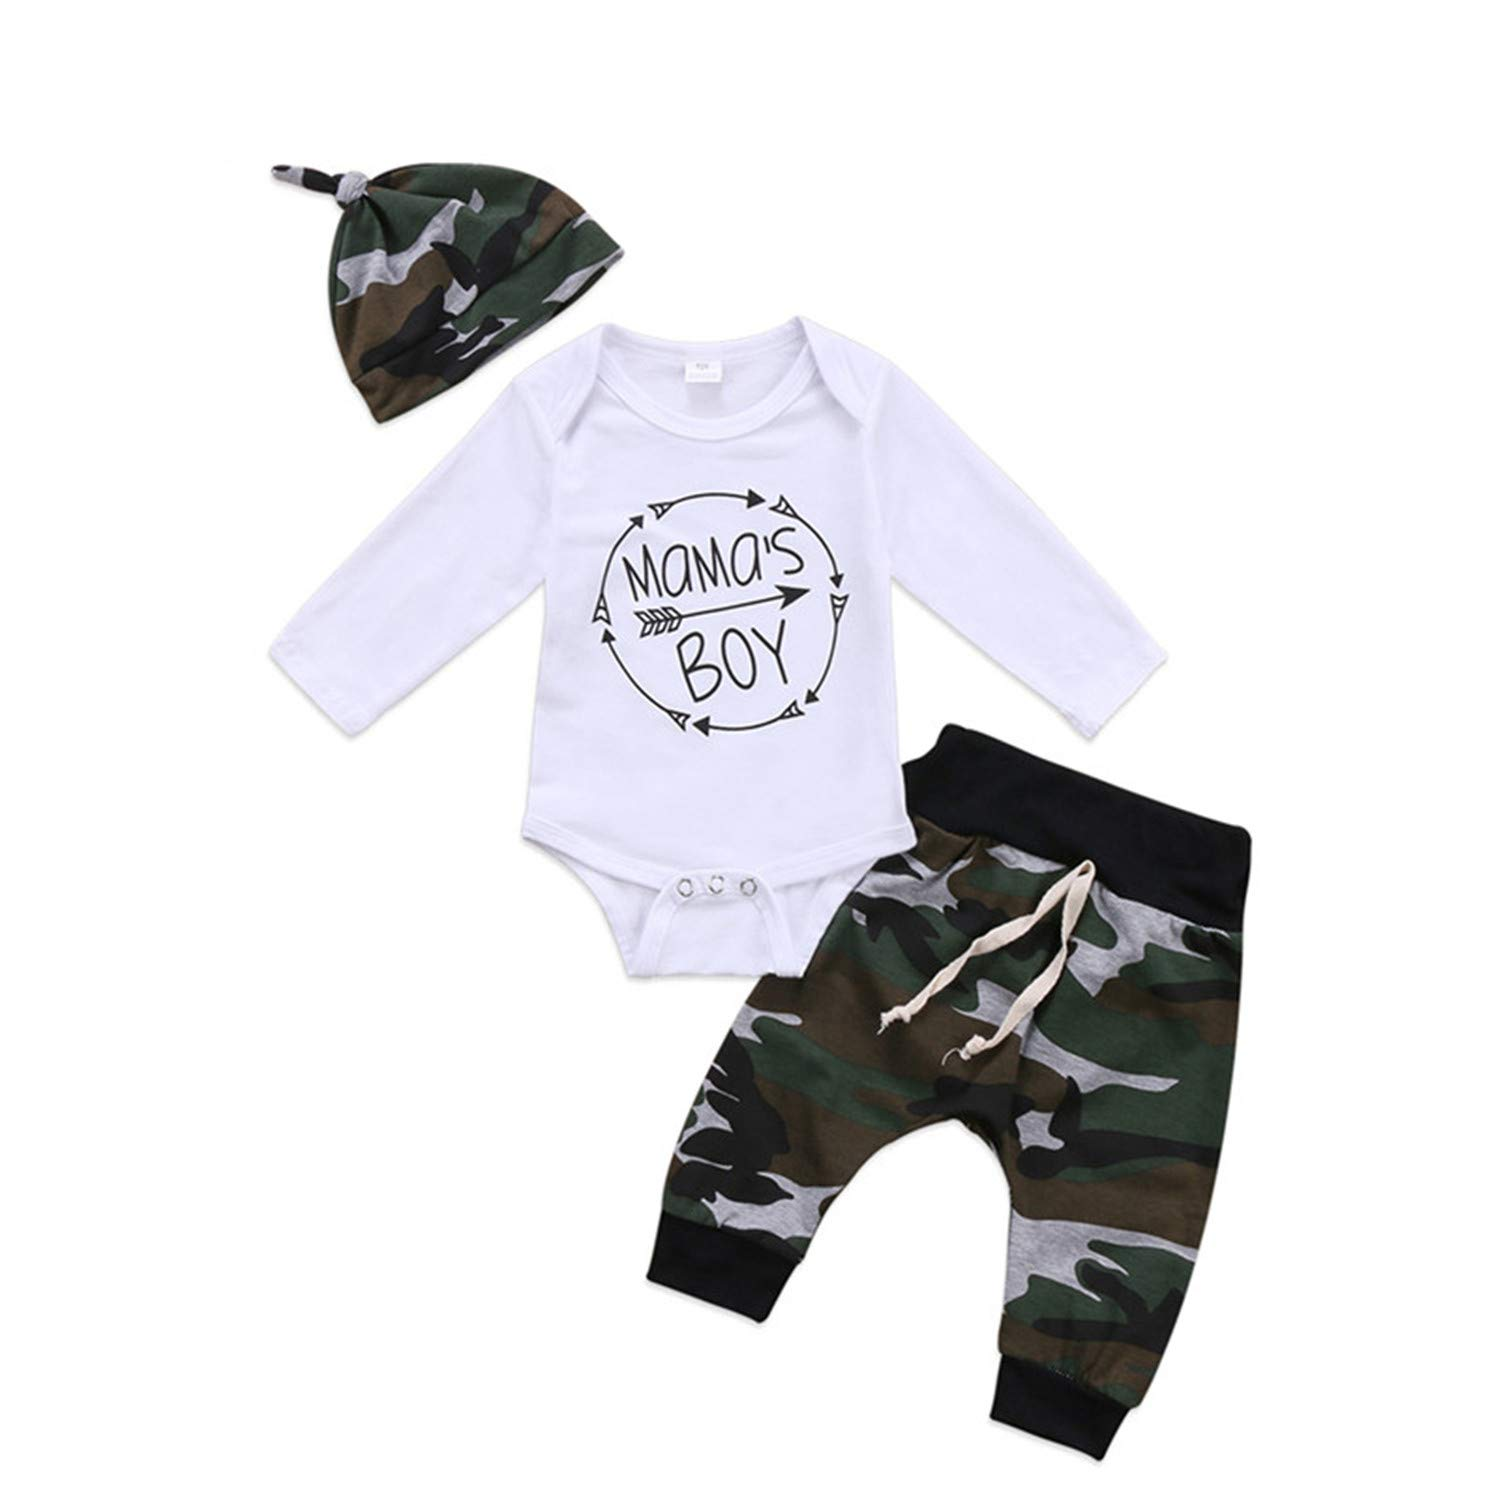 New 3Pcs Set Newborn Toddler Infant Baby Boy Long Sleeve Tops Romper Camouflage Pants Hat 3Pcs Kids Outfits Clothes 3M by Sarahwu